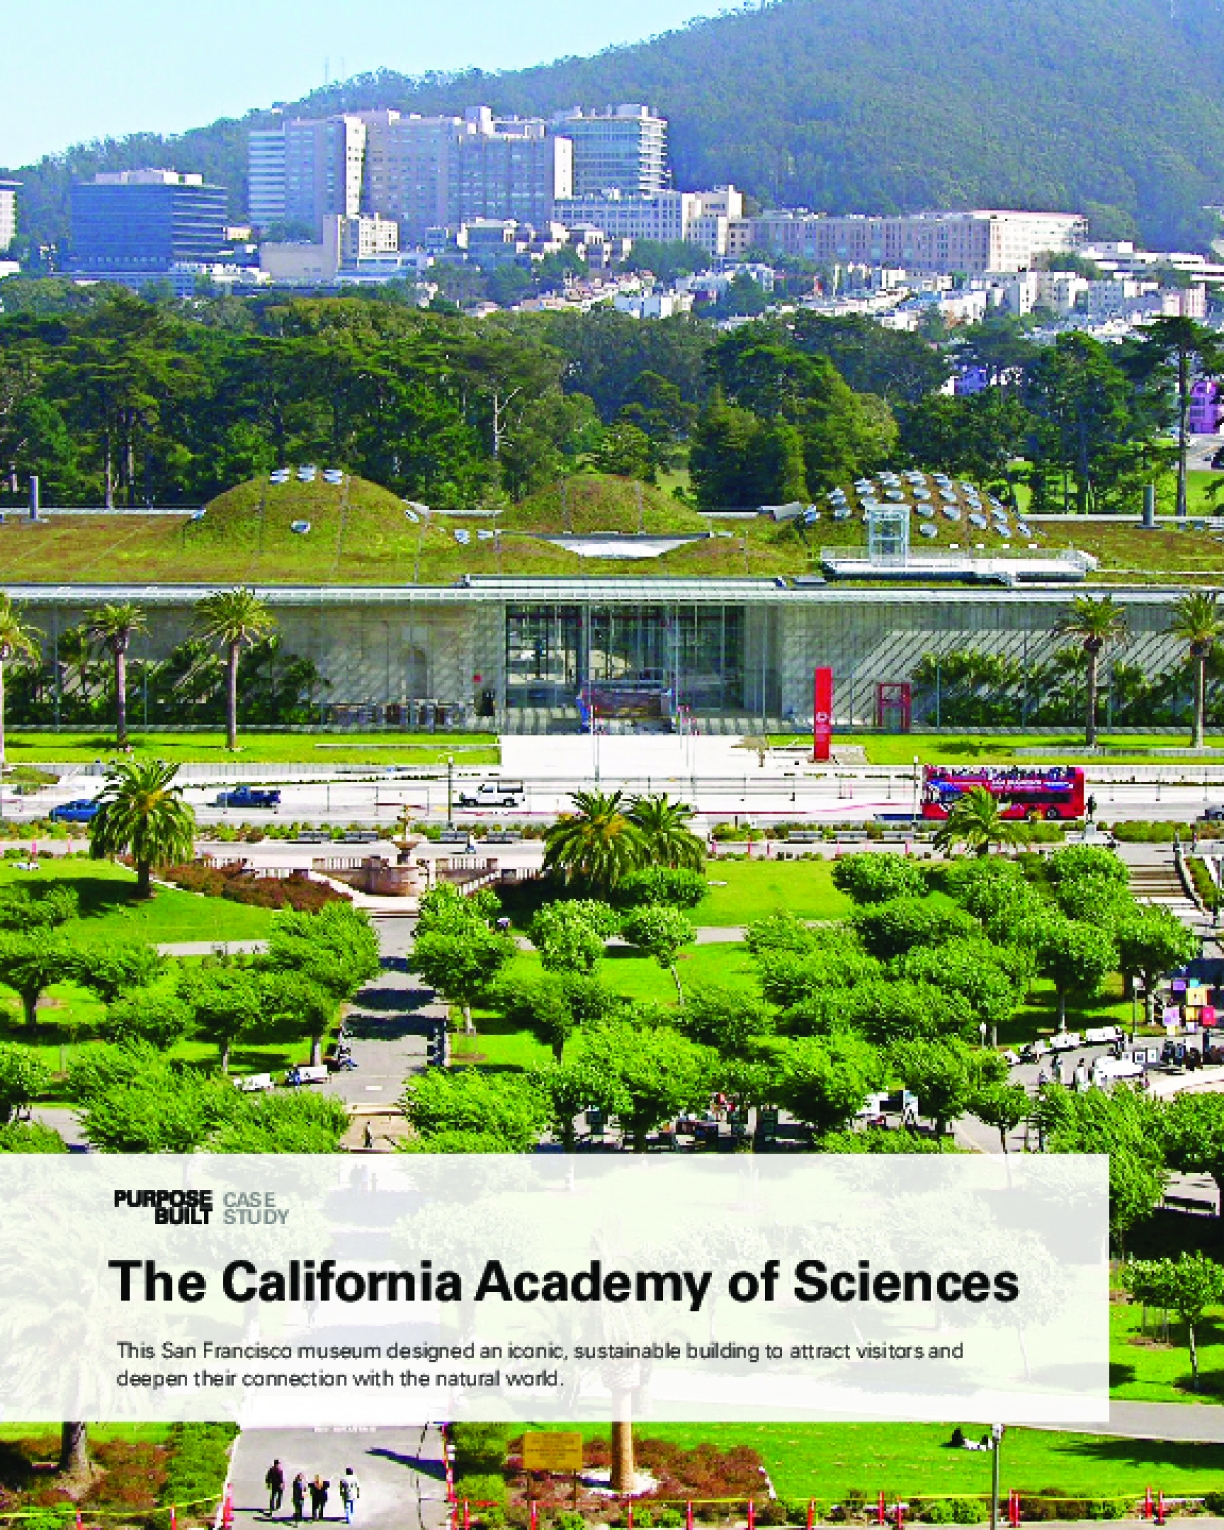 Purpose Built Case Study: The California Academy of Sciences